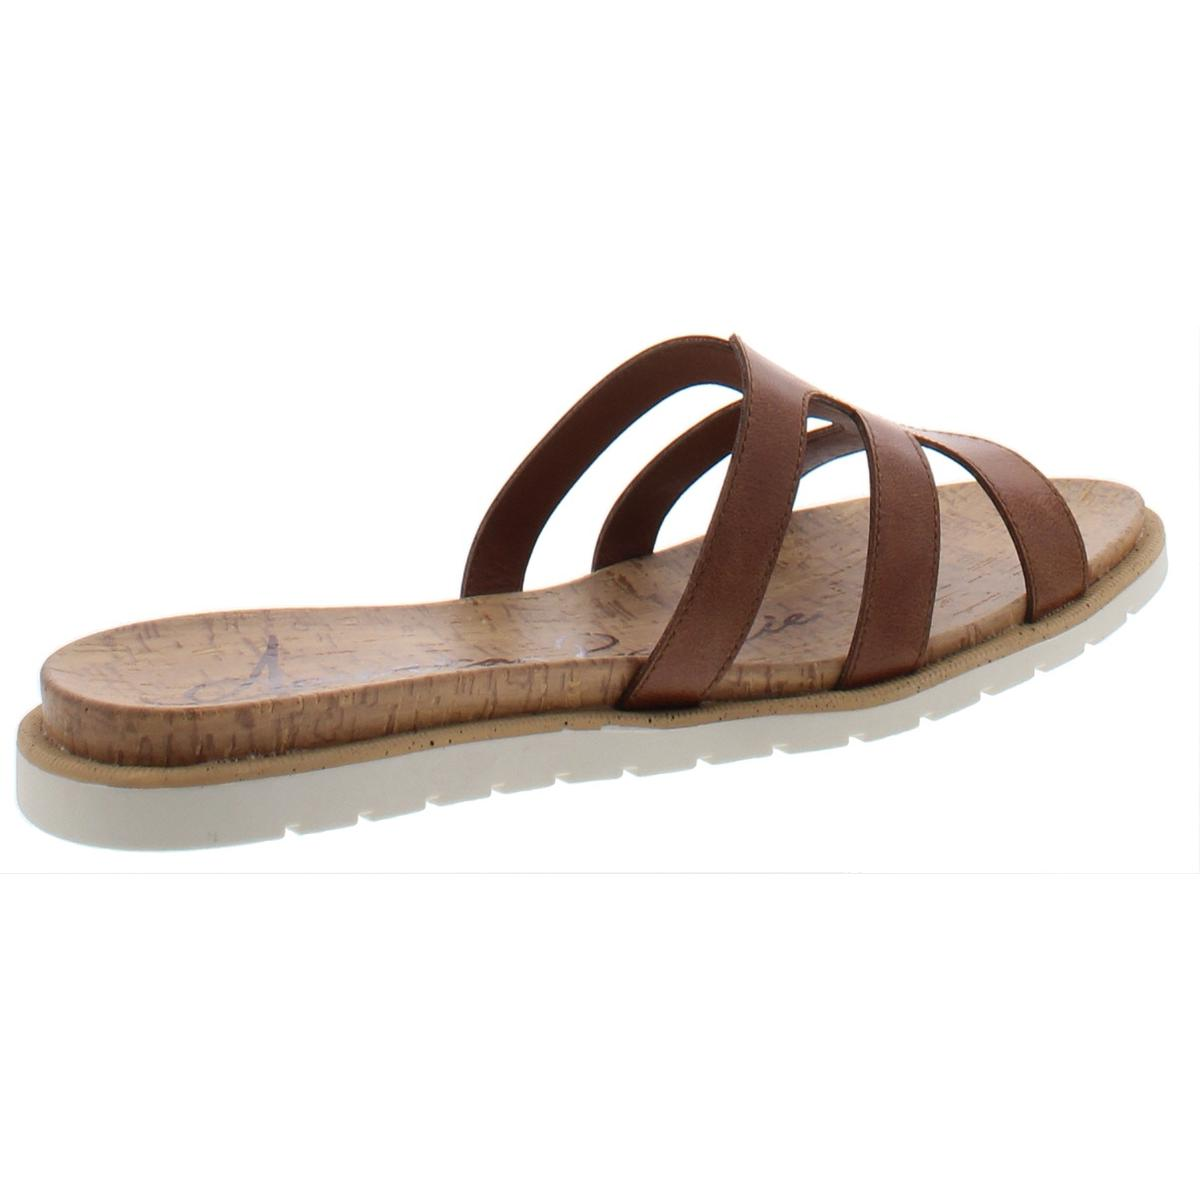 American Rag Womens Danah Faux Leather Slip On Casual Flats Shoes BHFO 0402